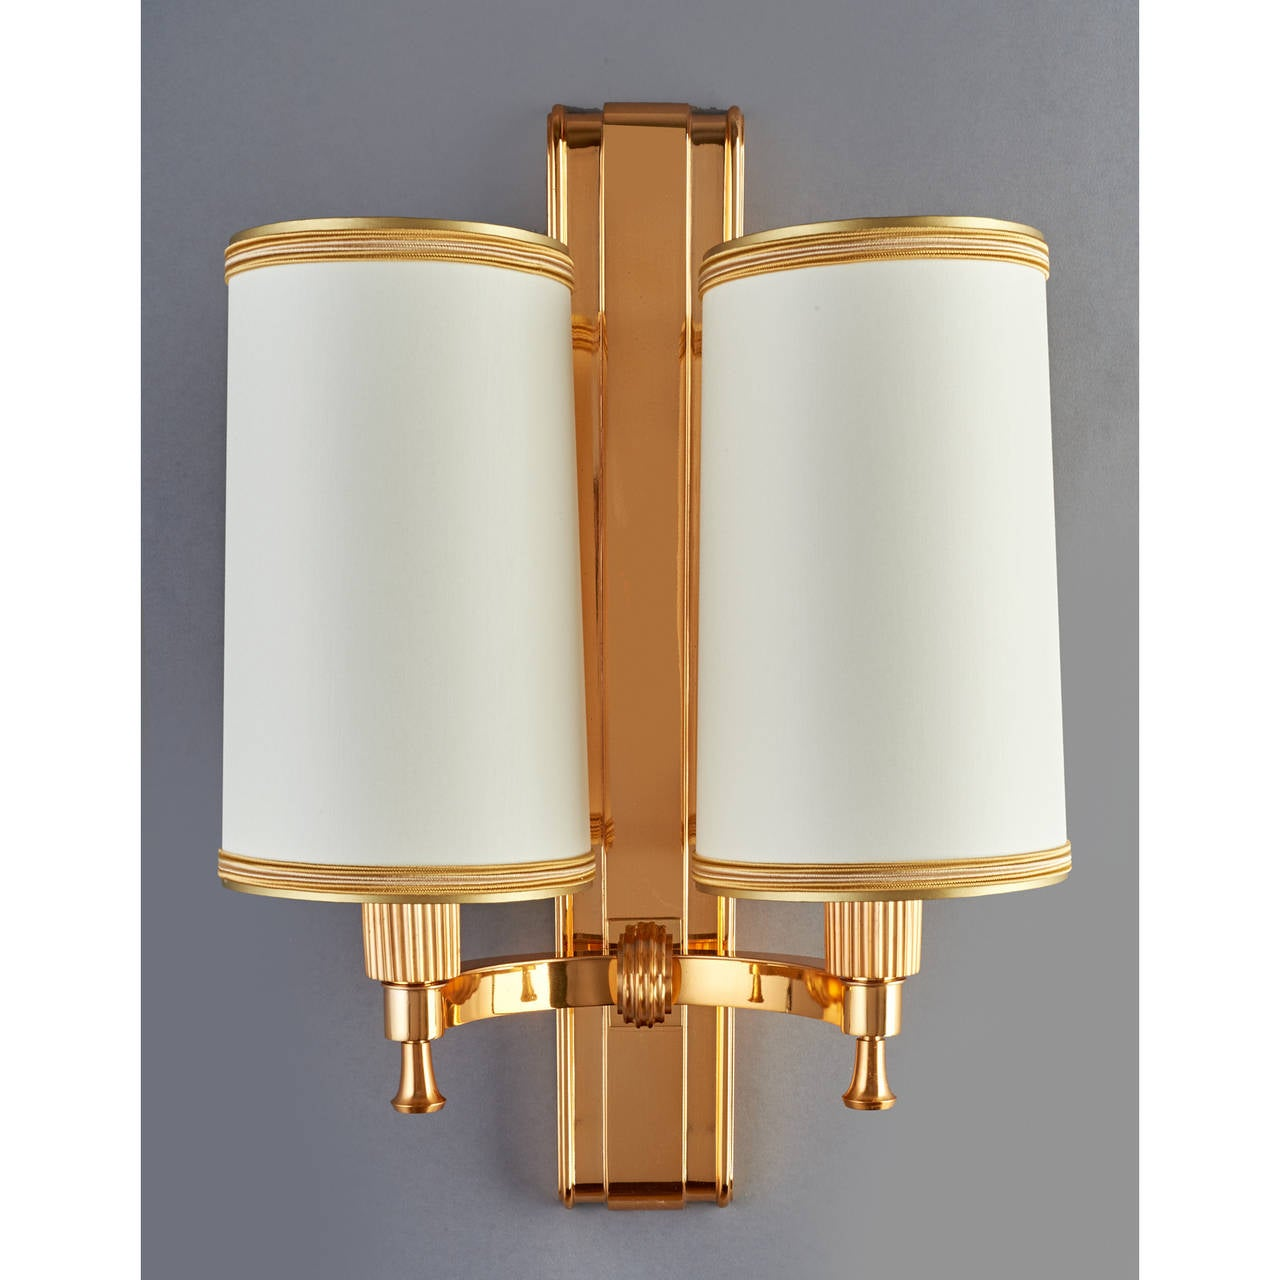 Elegant 1940's Bronze Sconces by Maxime Old 2